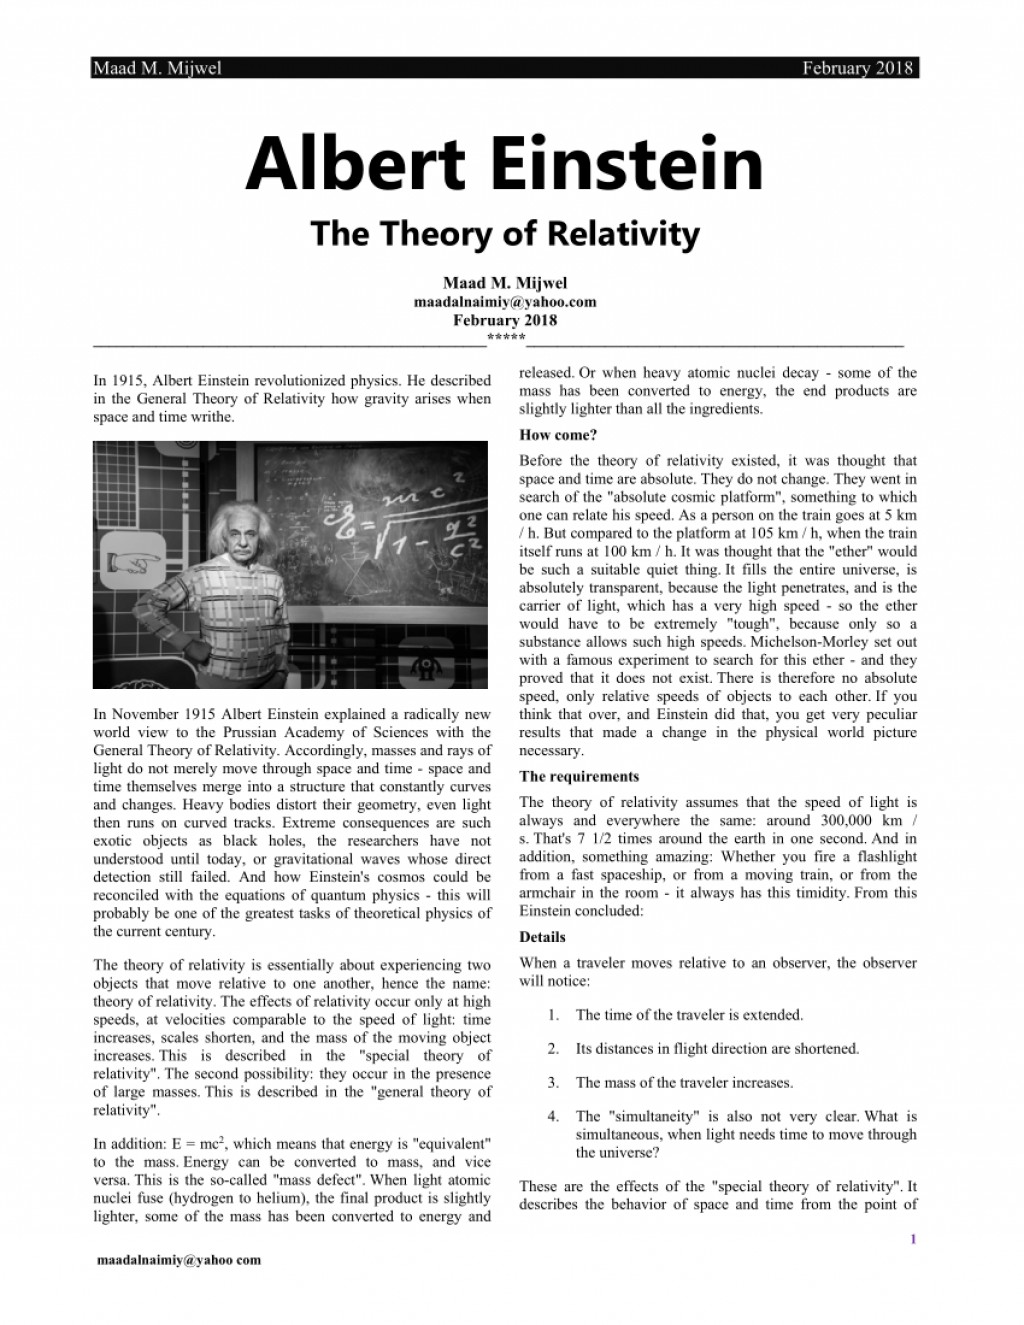 022 Albert Einstein Essay Largepreview Awesome Pdf Essays In Humanism 200 Words Large